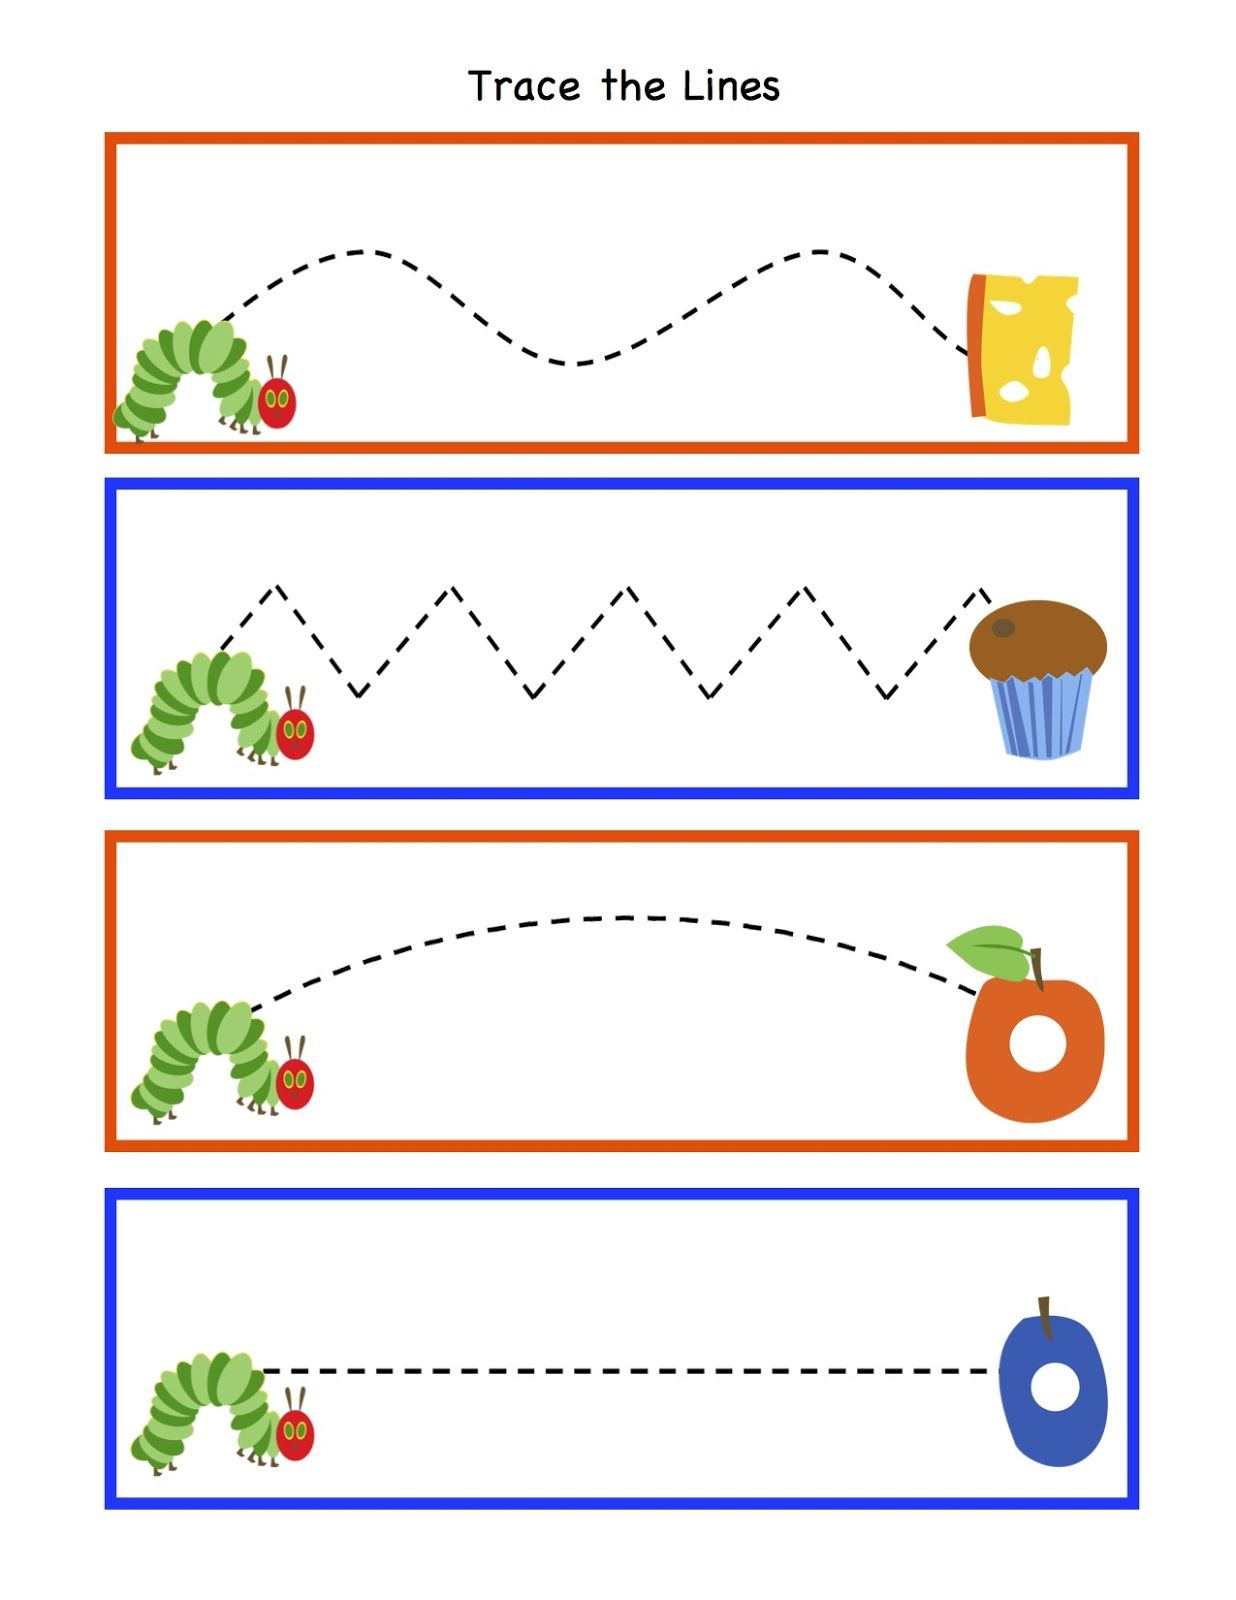 Pin By Mindi Sherman On School Butterflies Bugs Hungry Caterpillar Activities The Very Hungry Caterpillar Activities The Very Hungry Caterpillar [ 1600 x 1236 Pixel ]